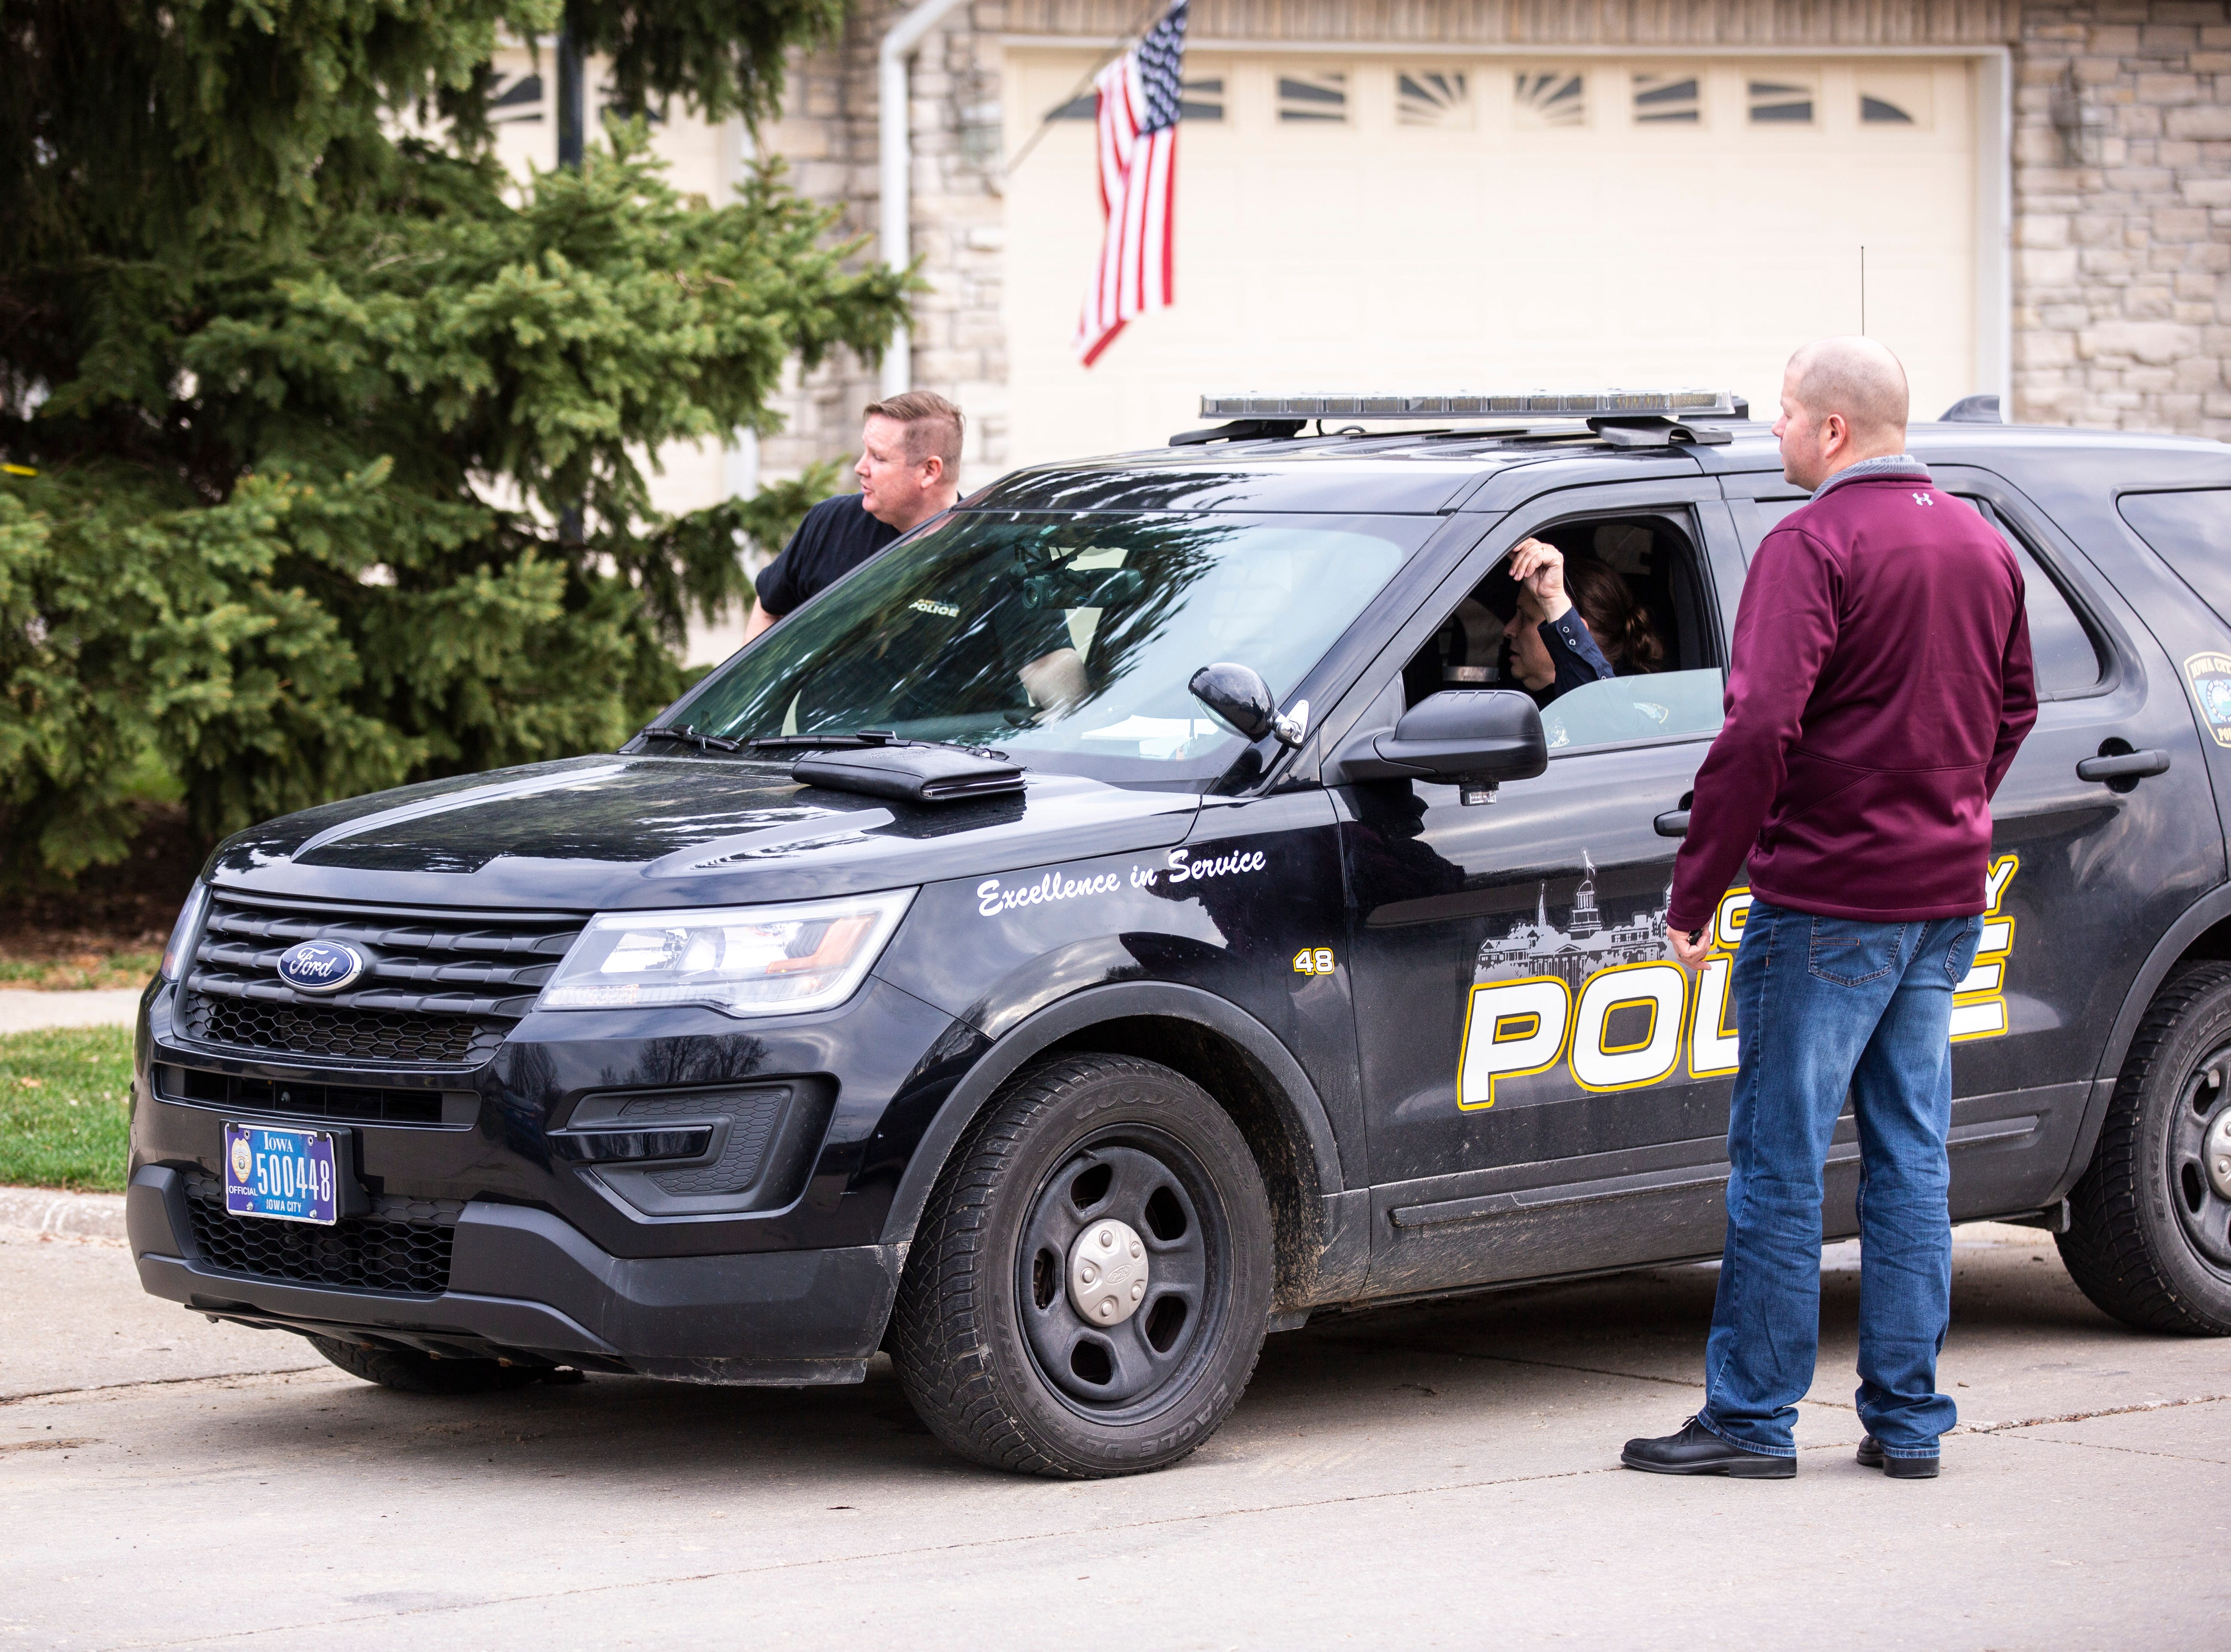 Police investigators respond to a scene of a suspicious death on Friday, April 5, 2019, at 114 Green Mountain Drive in Iowa City, Iowa.